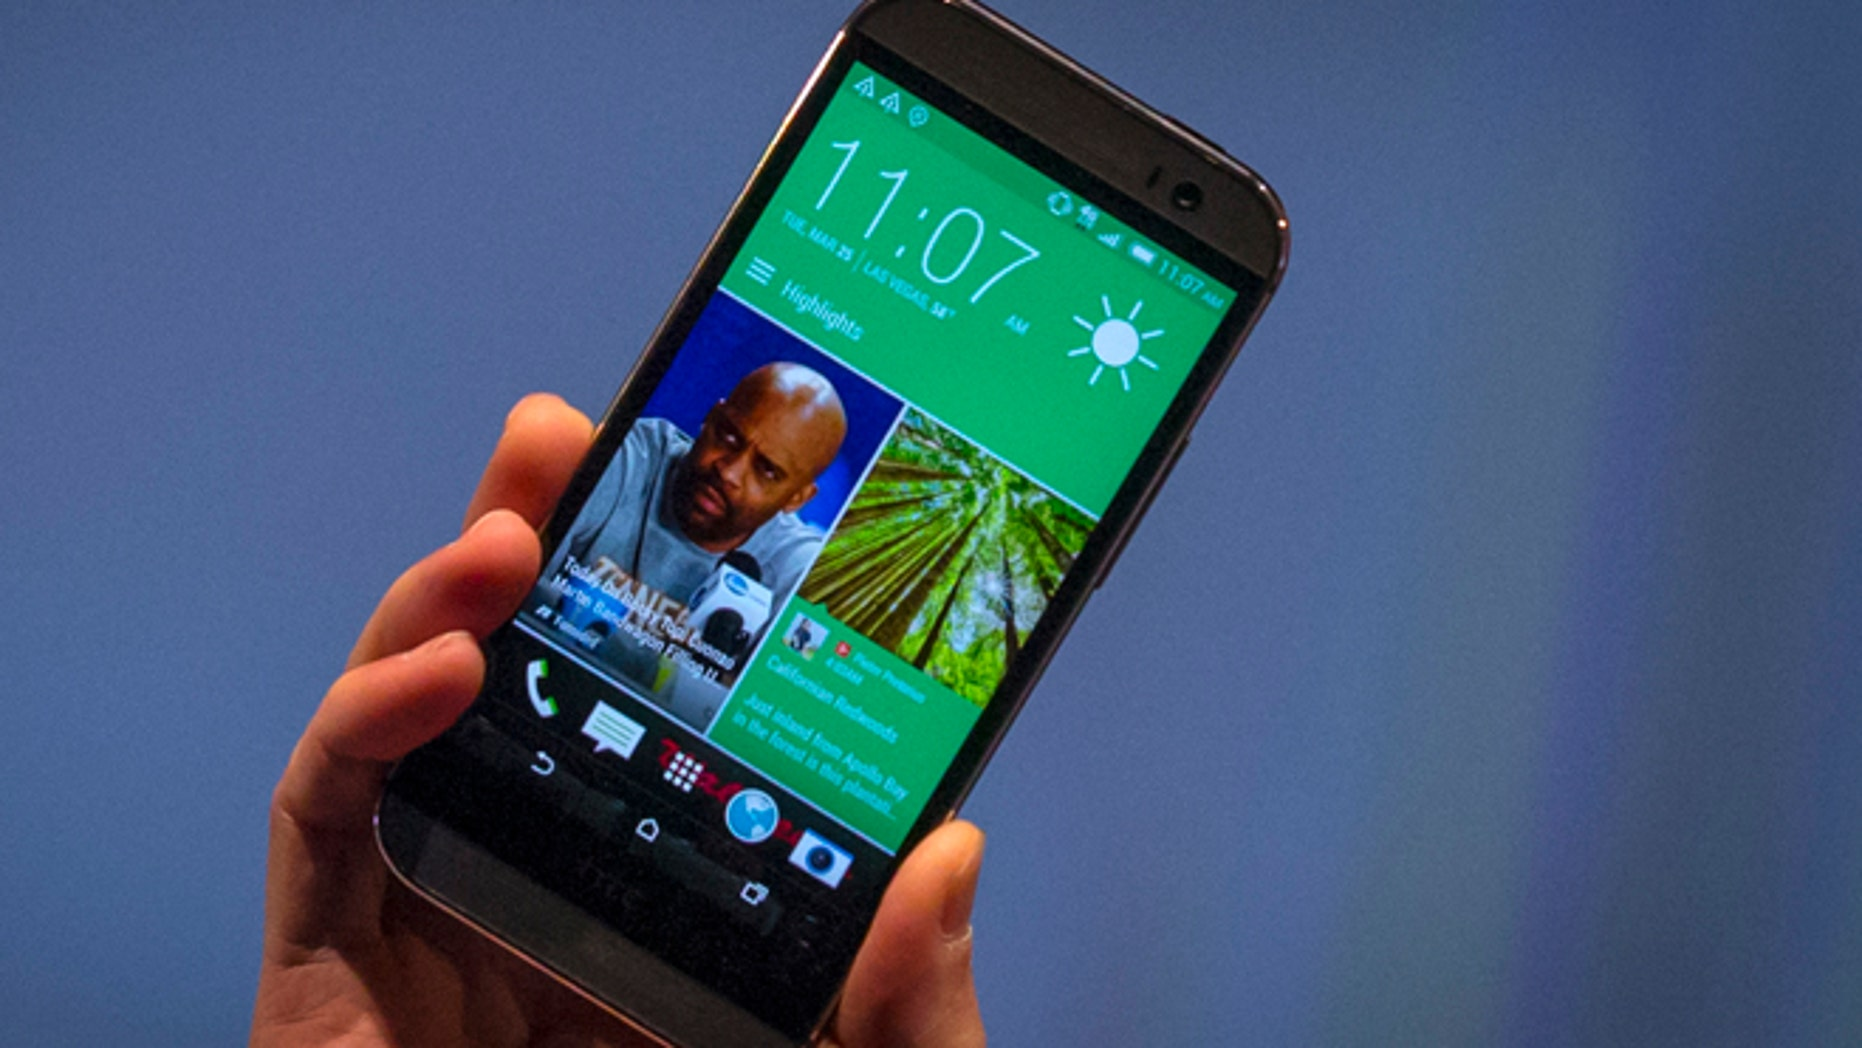 March 25, 2014: HTC CEO Peter Chou shows the new HTC One M8 phone during a launch event in New York.